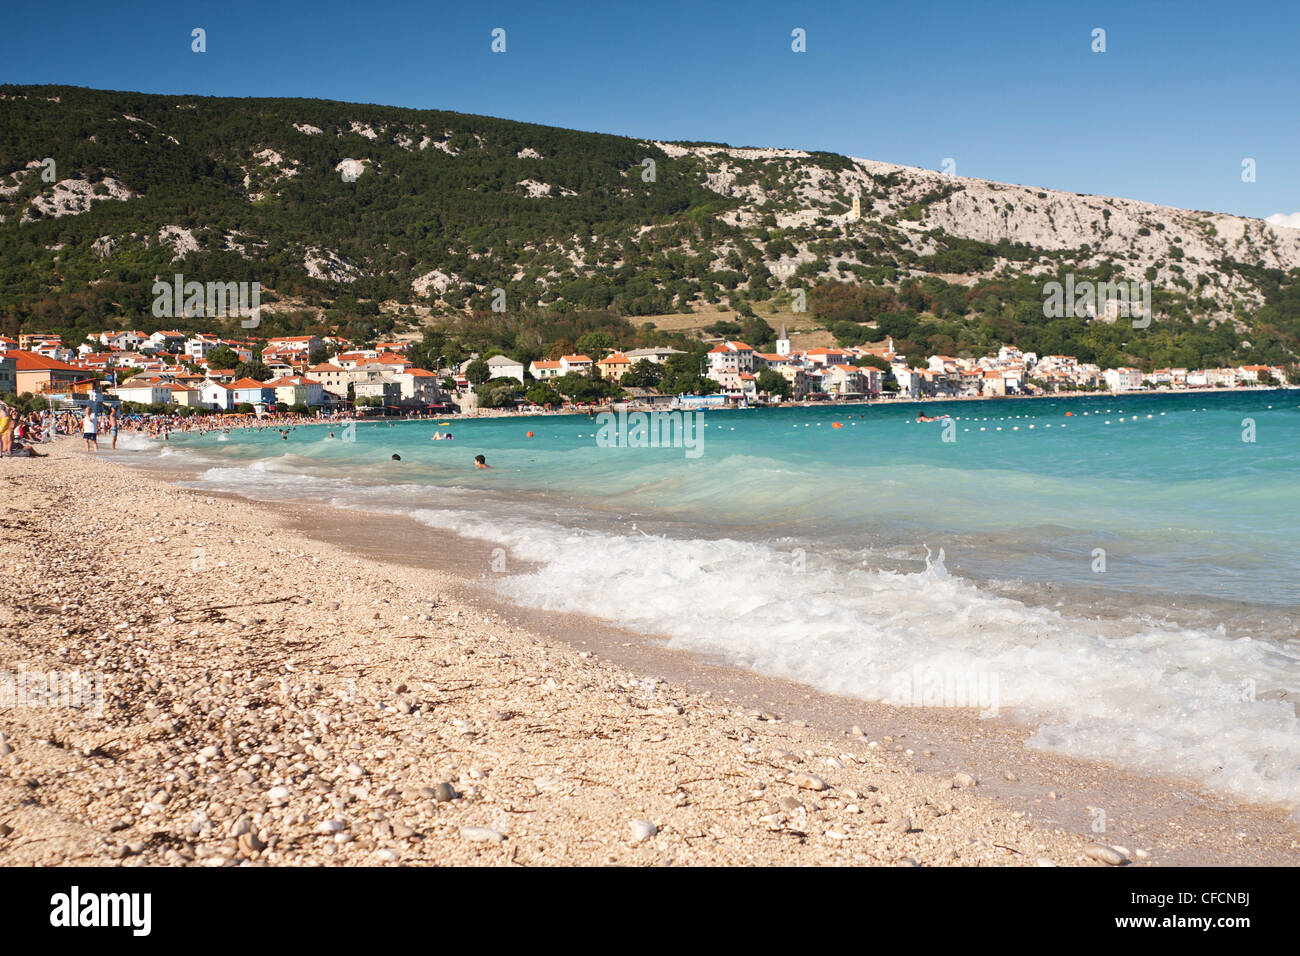 the beach in Baska - Croatia - Stock Image